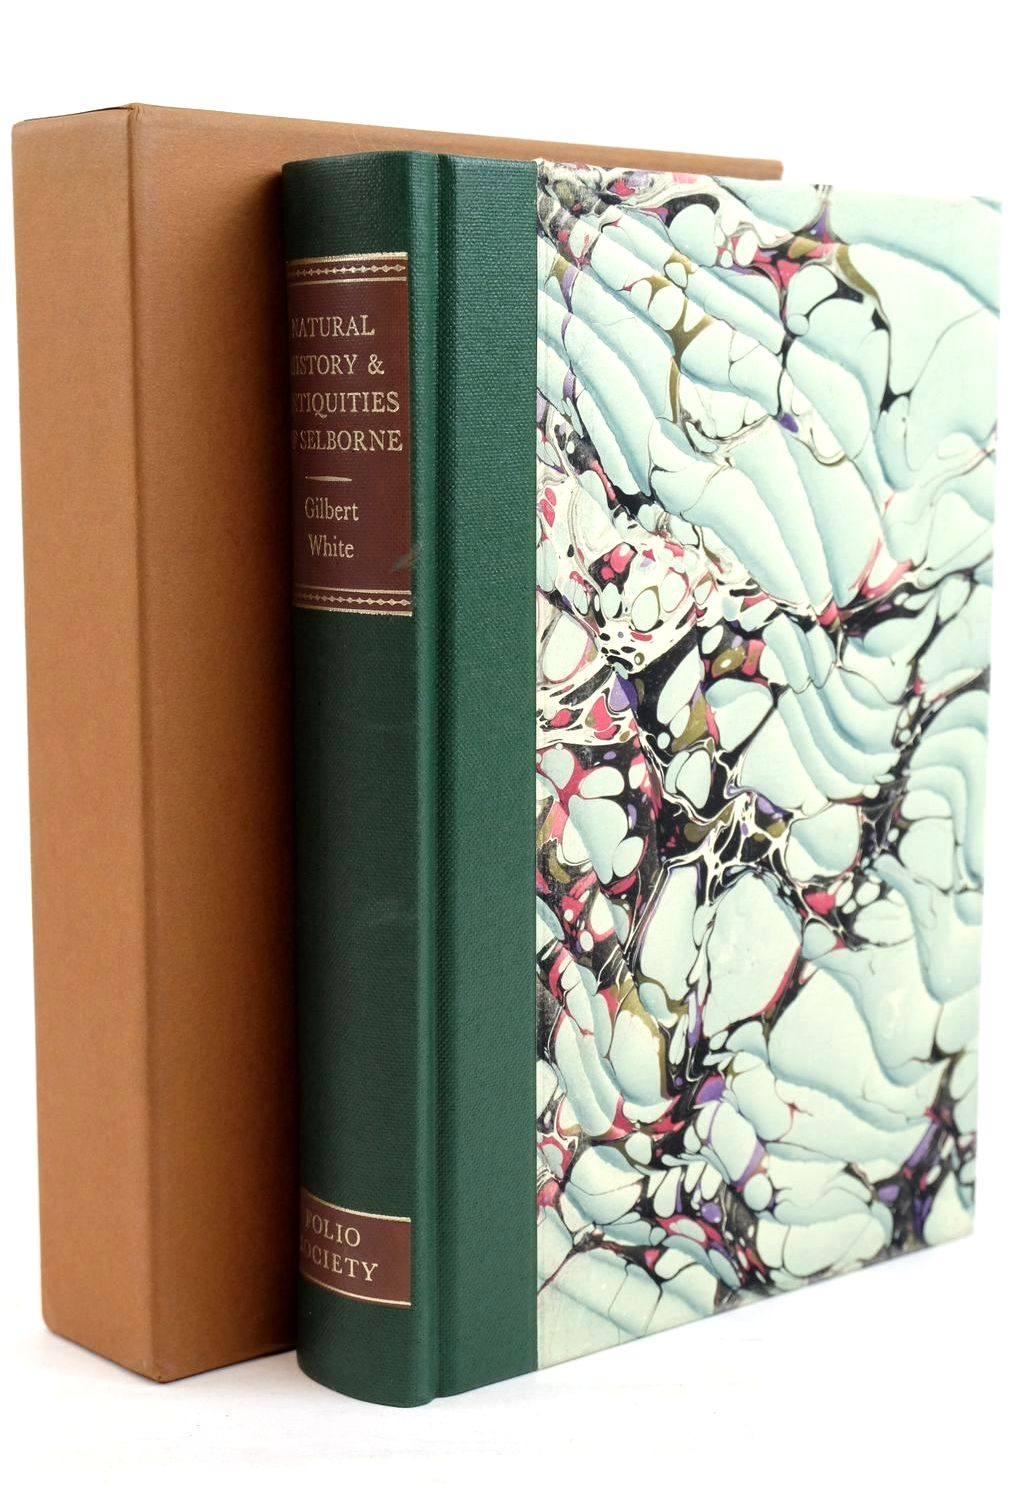 Photo of THE NATURAL HISTORY AND ANTIQUITIES OF SELBORNE written by White, Gilbert Niall, Ian illustrated by Wormell, Christopher published by Folio Society (STOCK CODE: 1320420)  for sale by Stella & Rose's Books